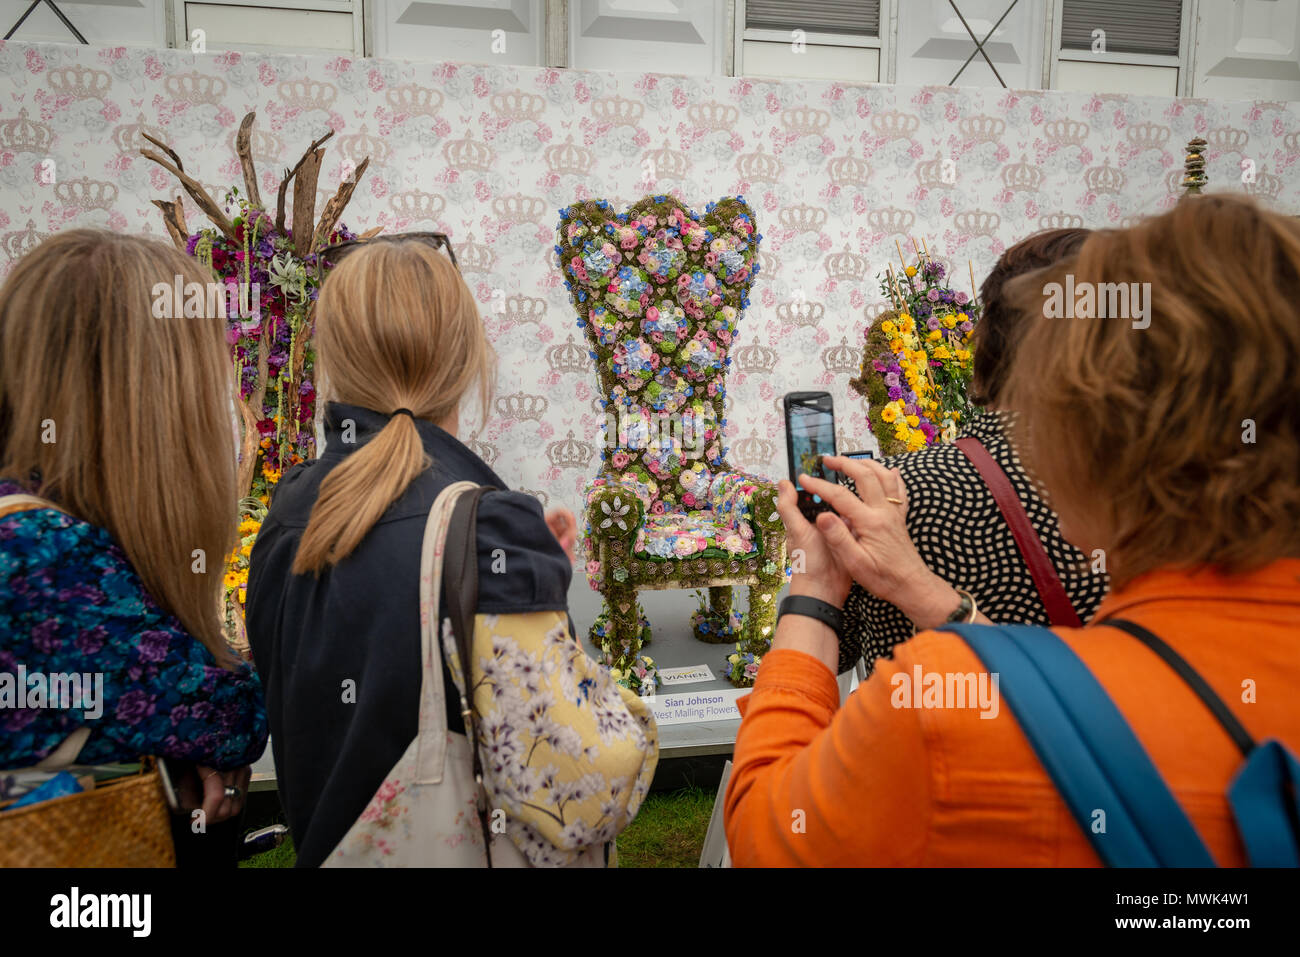 Visitors to the RHS Chelsea Flower Show take photographs of floral thrones which have been entered into the Florist Of The Year category of the show.  Stock Photo